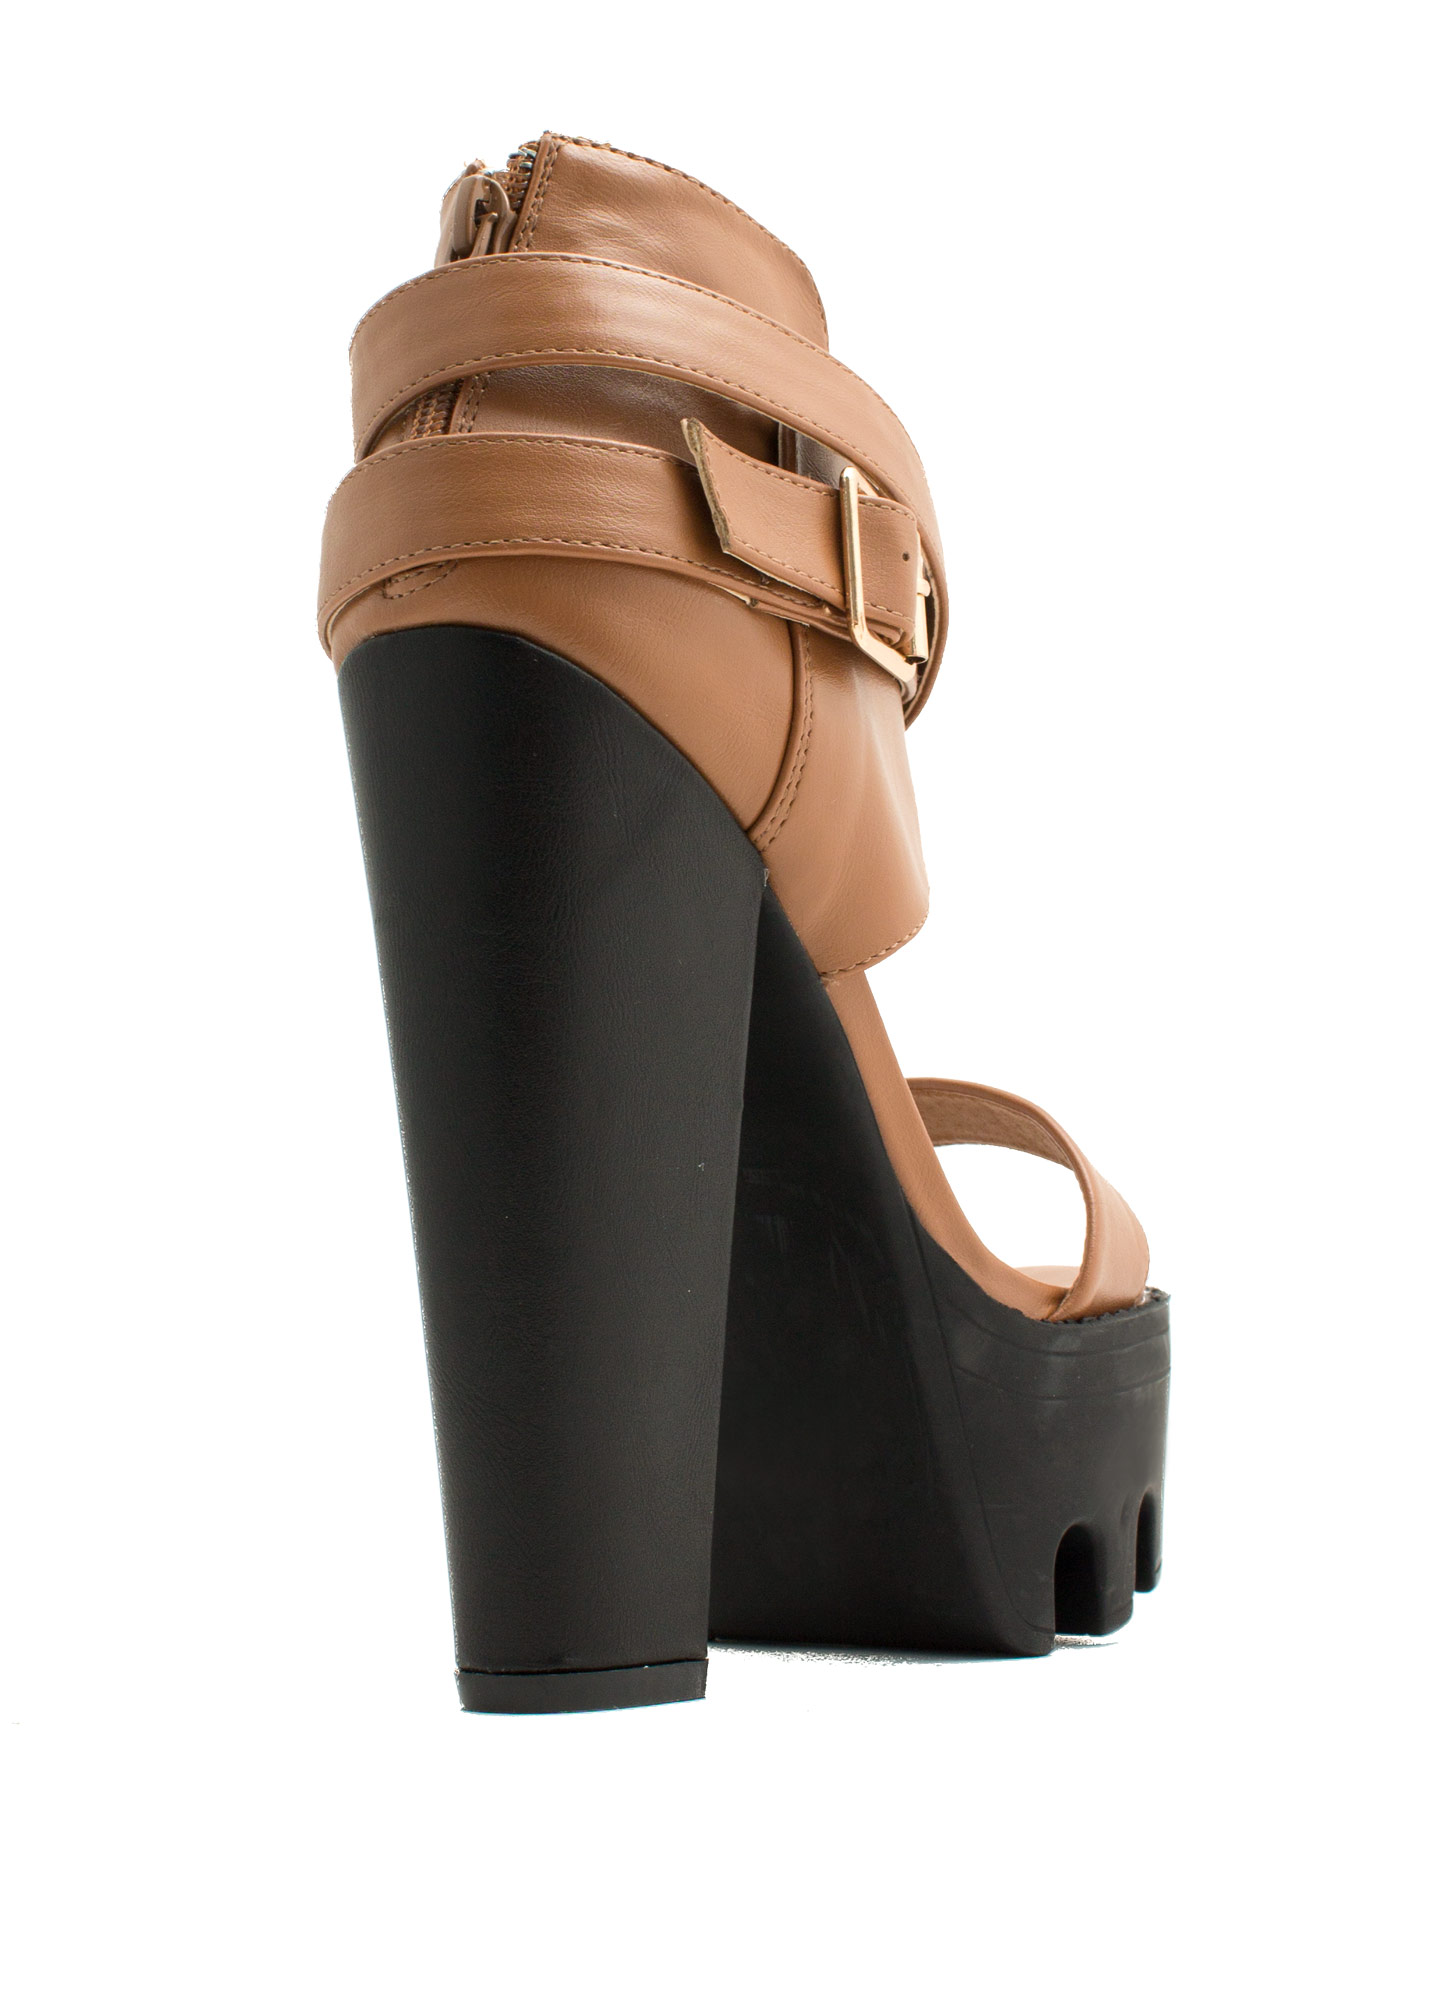 Rugged 'N Chic Single-Strap Heels WHISKY